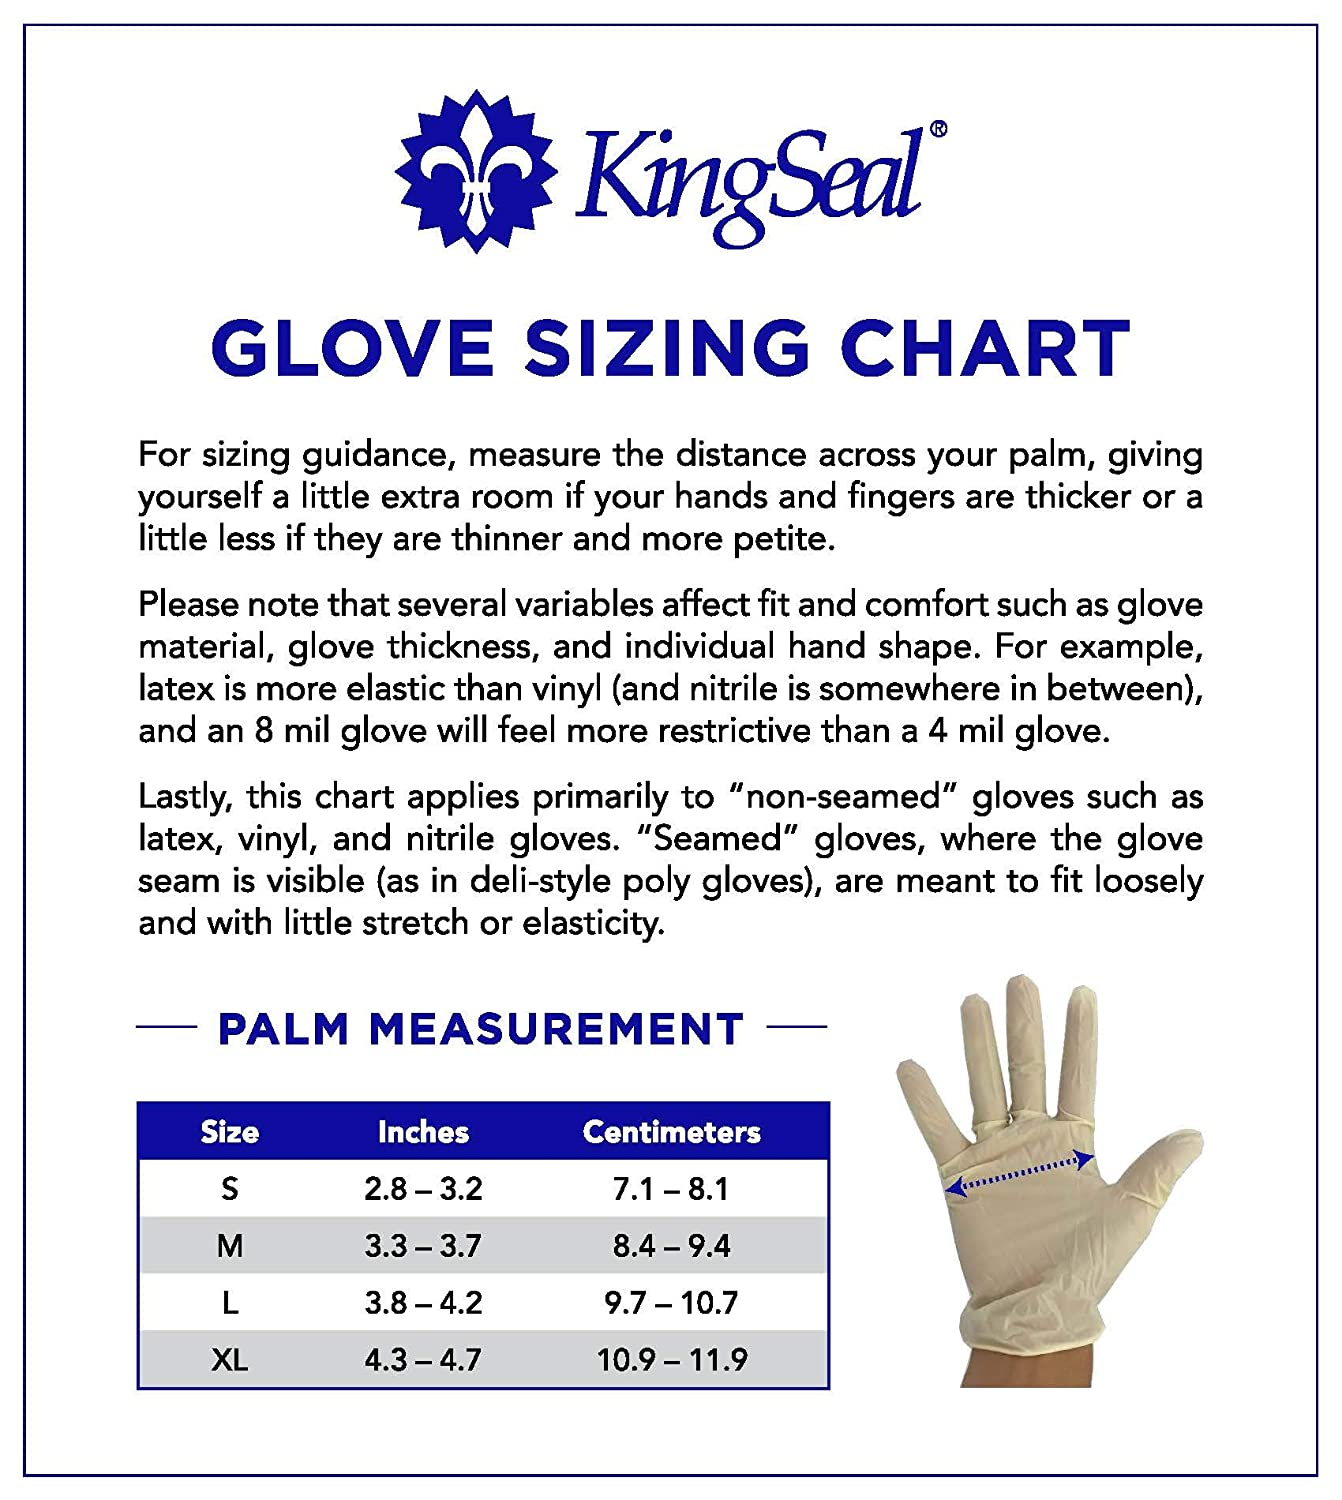 Latex-Free Size Medium KingSeal Nitrile Disposable Gloves 4 boxes of 100 gloves 400pcs total Blue 4 mil Powder-Free